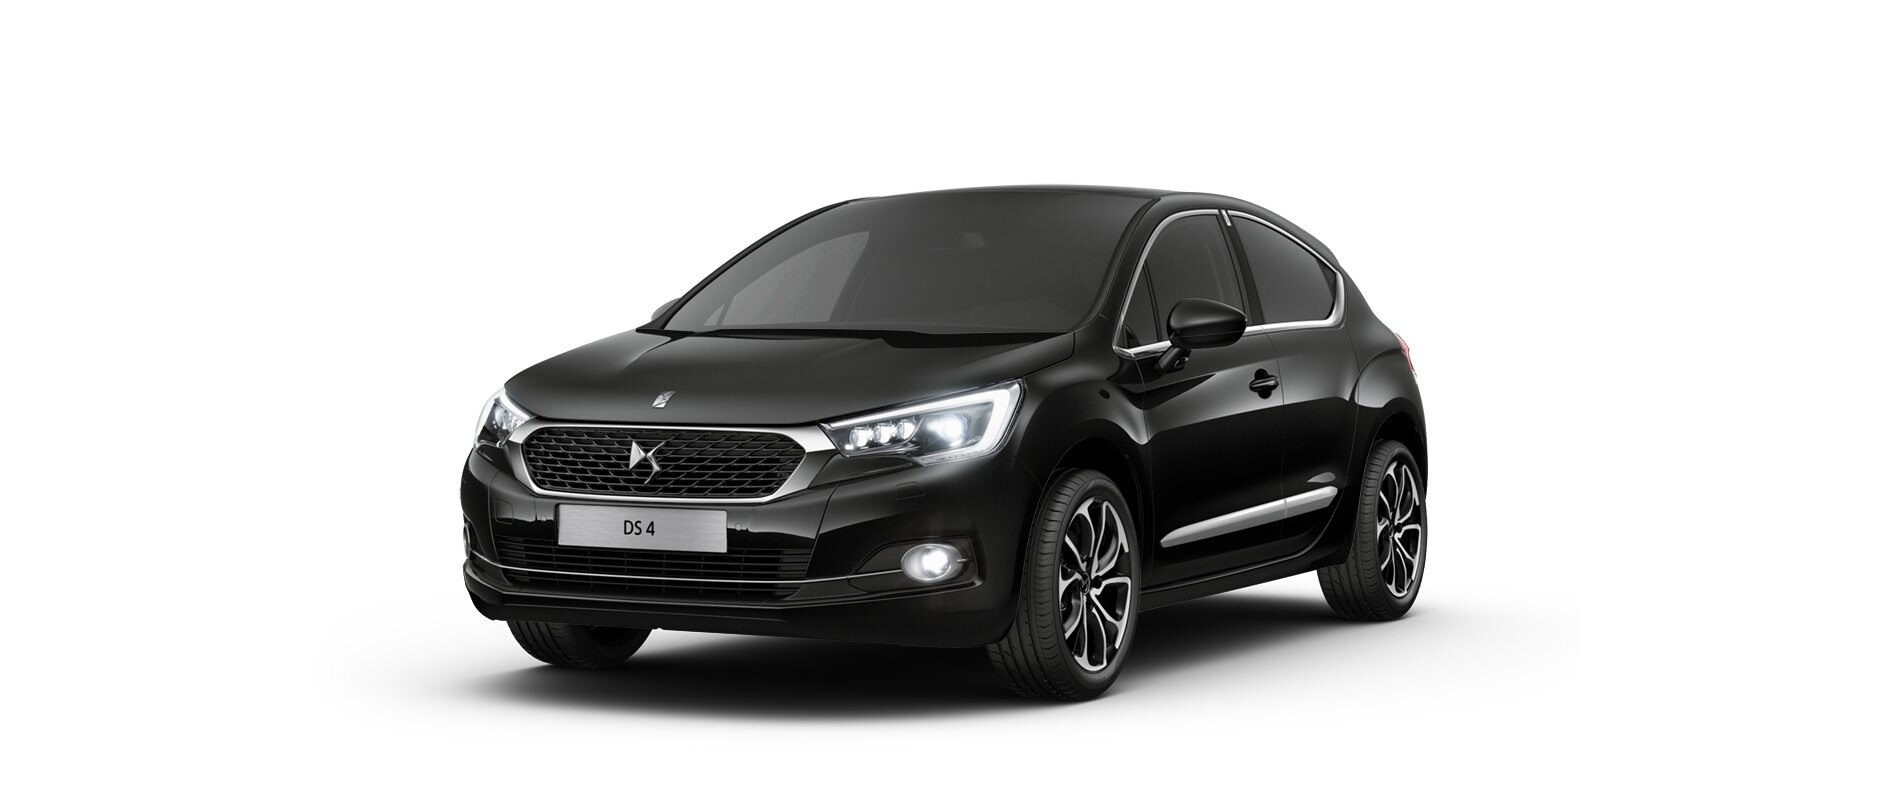 Novi DS 4 - Perla Nera Black